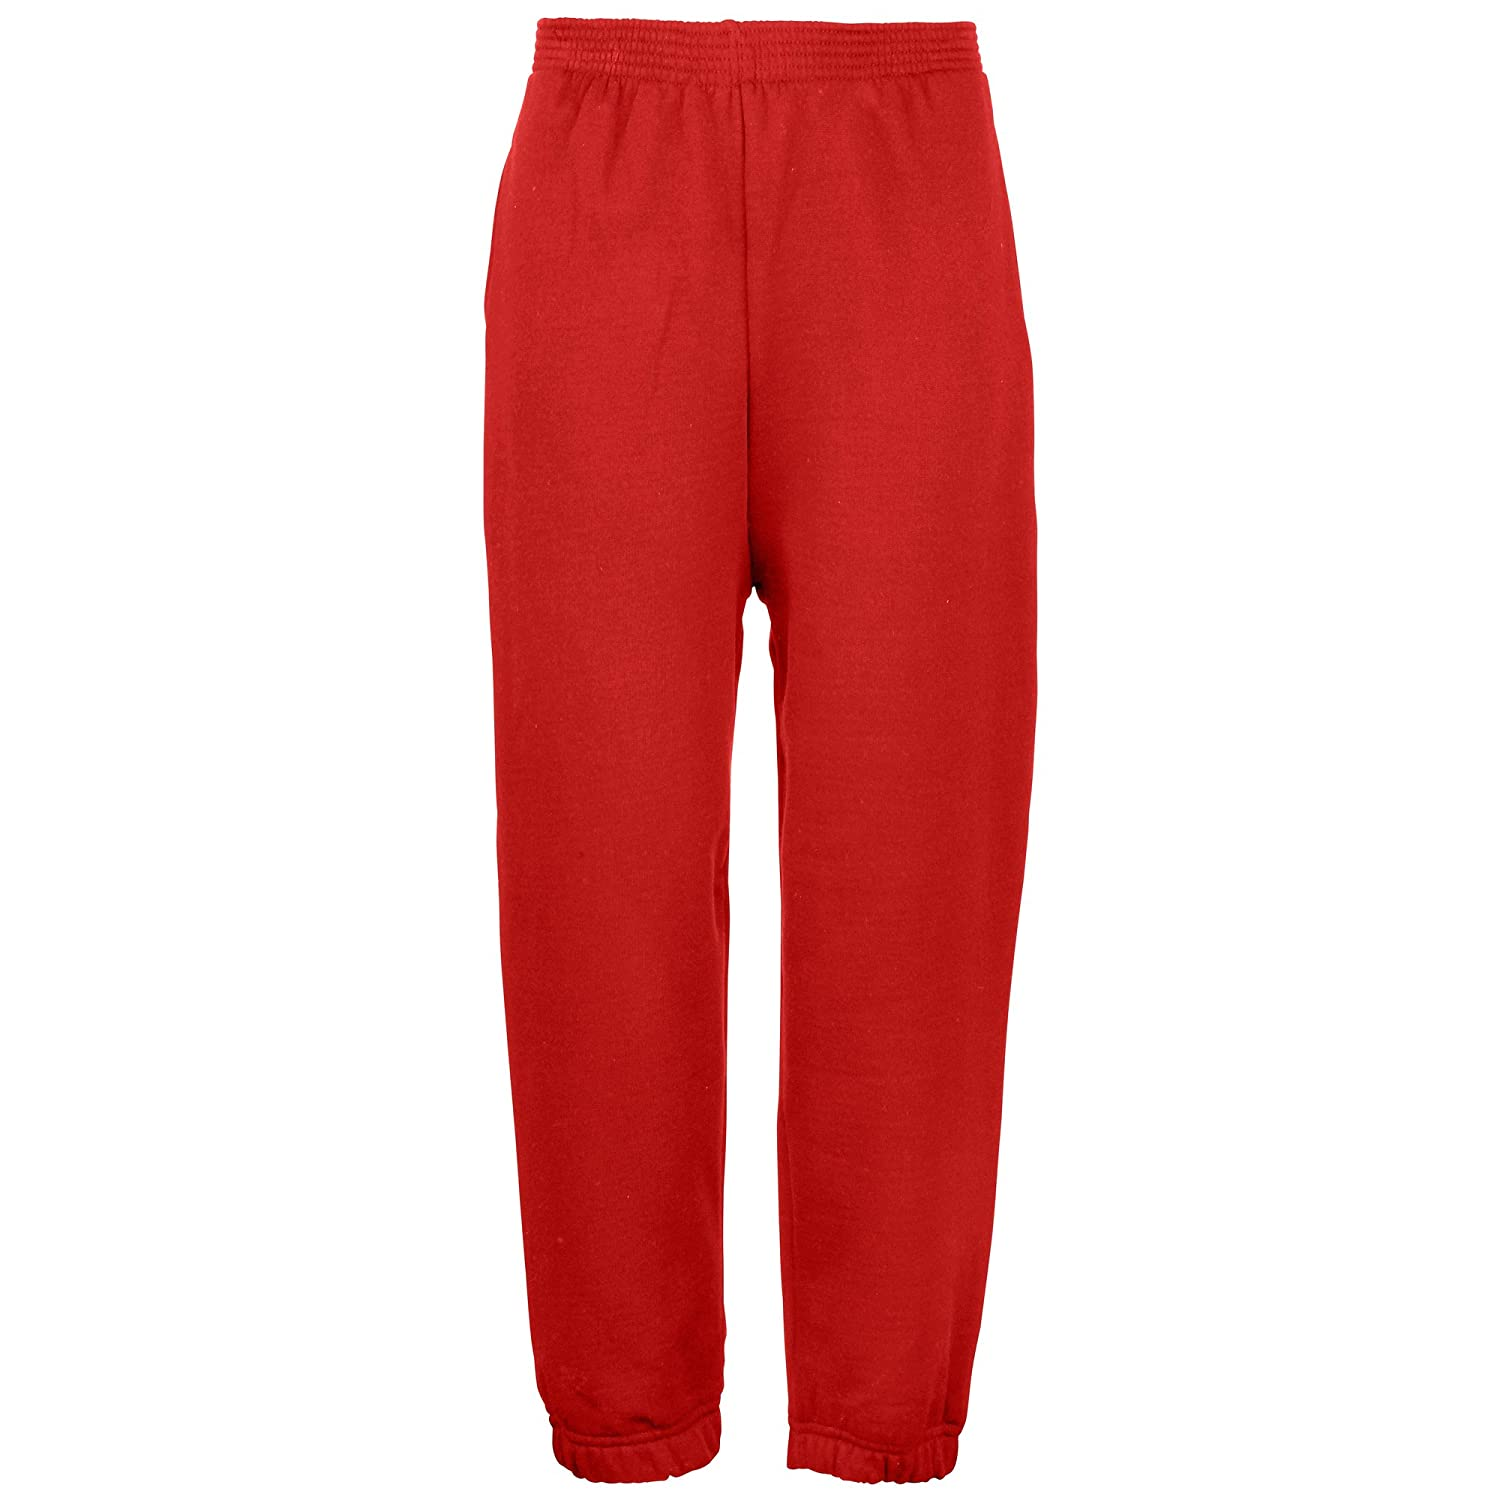 Maddins Kids Unisex Coloursure Jogging Pants/Jog Bottoms/Schoolwear